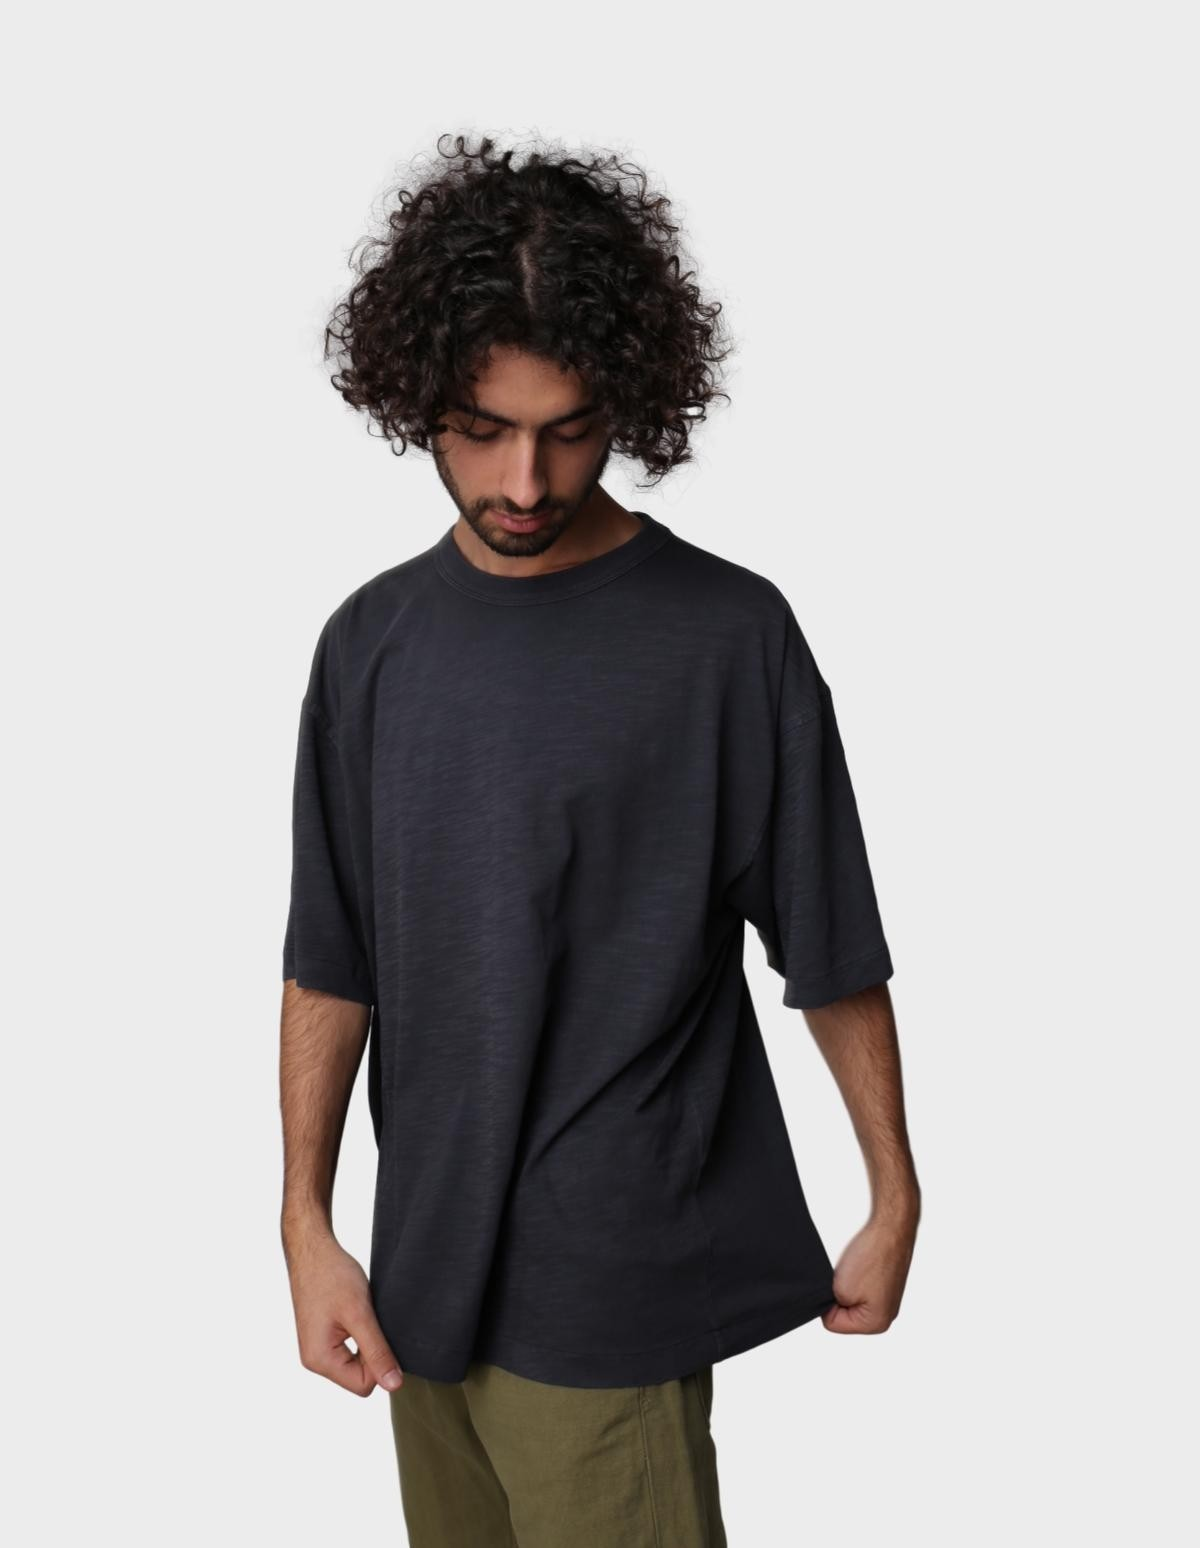 YMC You Must Create Triple SS Top in Charcoal